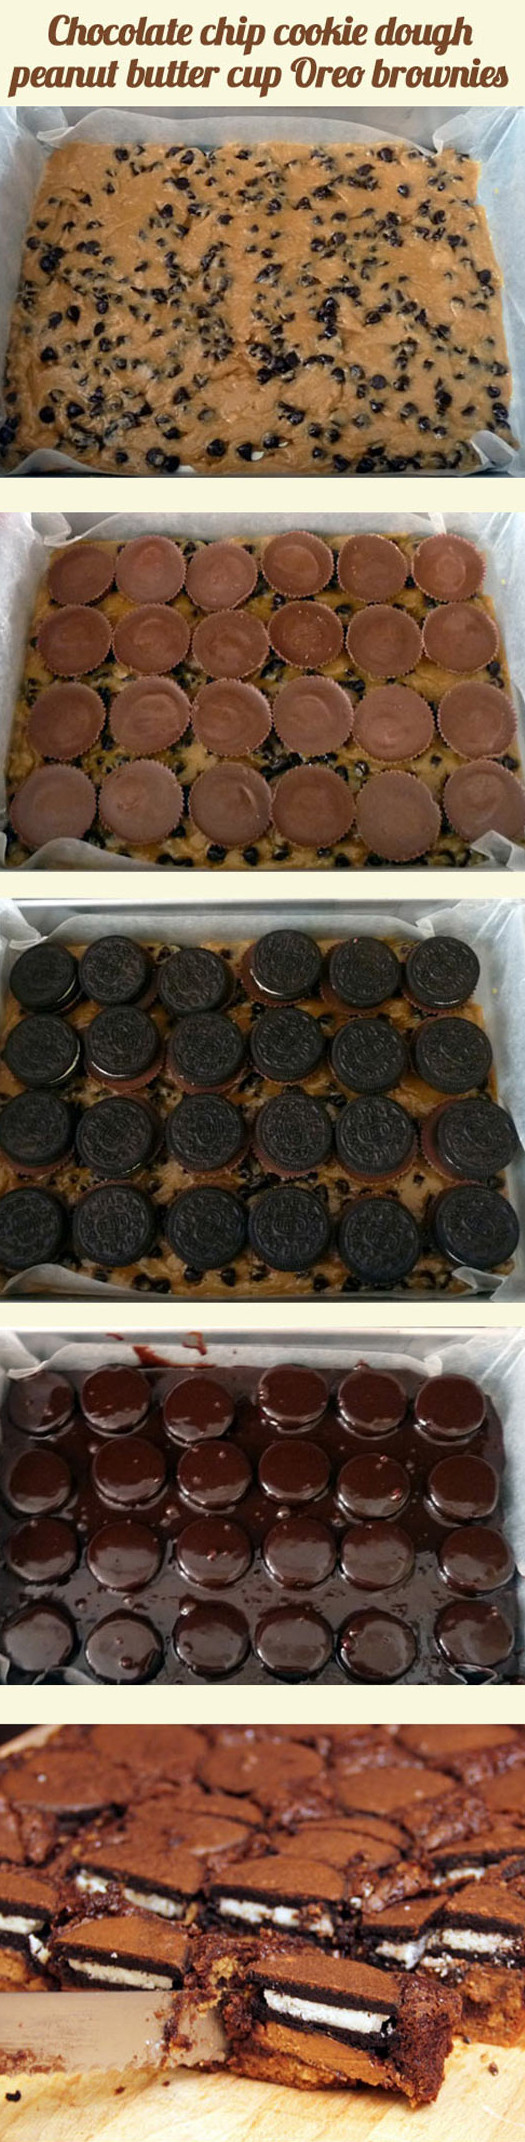 cool-cake-chocolate-chip-oreo-brownies